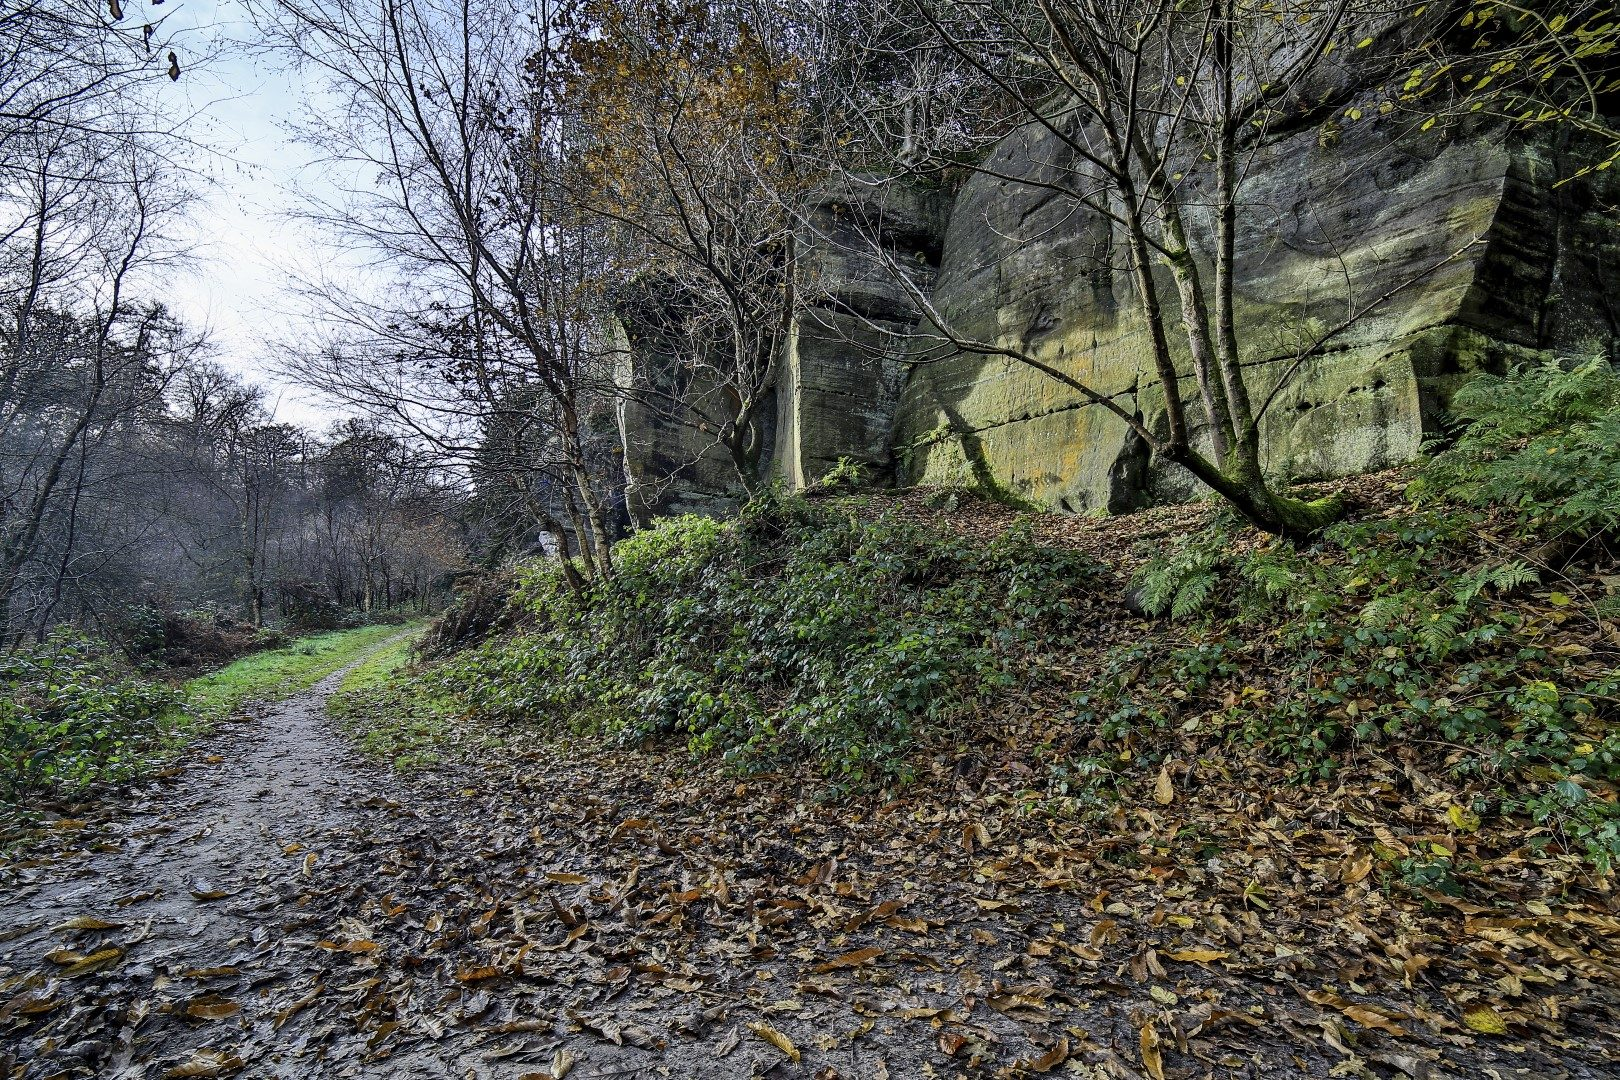 Eridge Rocks, Roods, Walks, path, Rich Clark Images